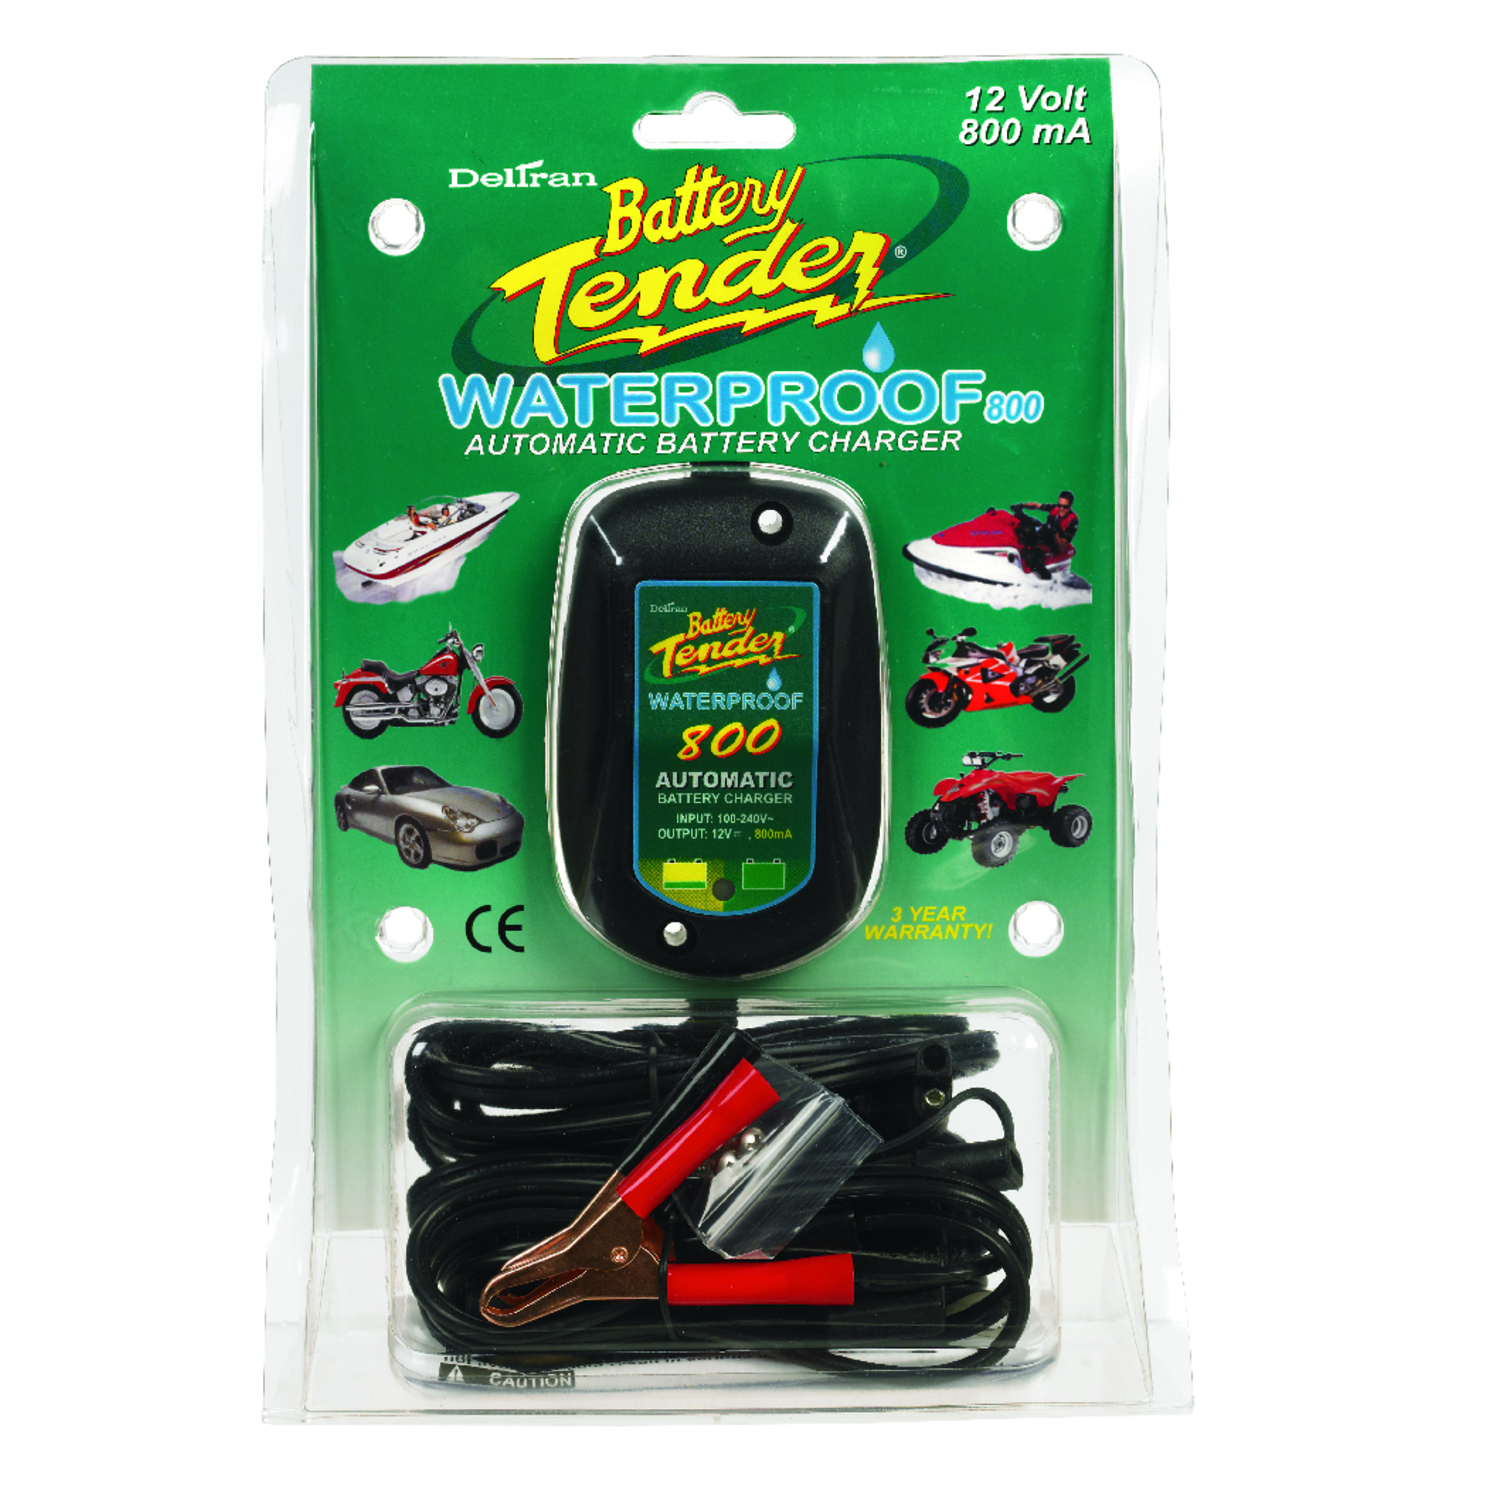 Battery Tender  Automatic  12 volts 800 mA Battery Charger